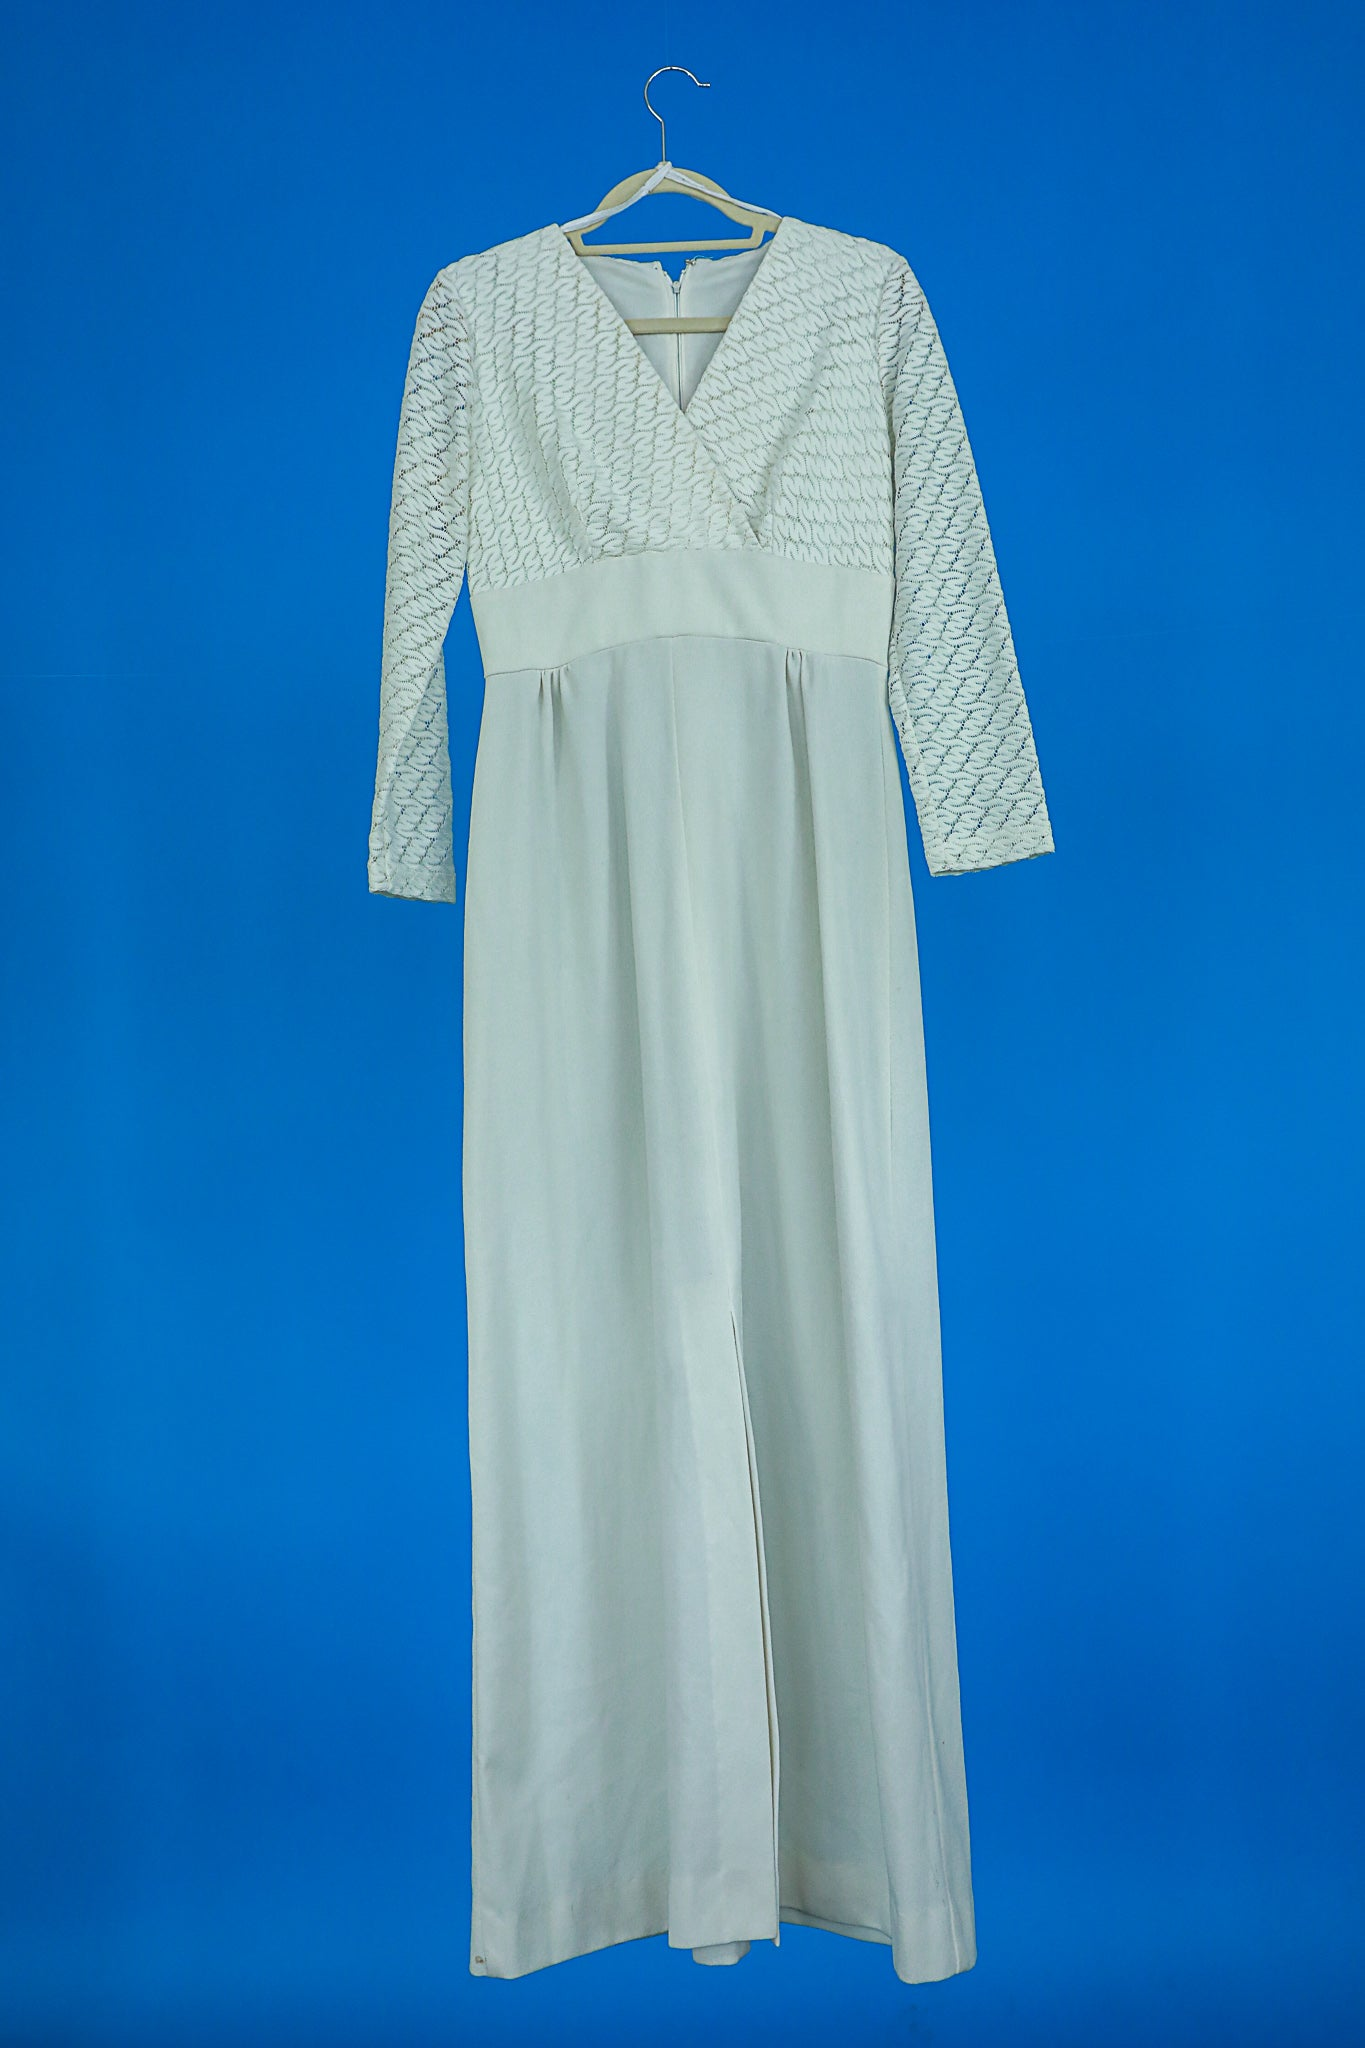 1970s Maxi dress by Aldens Fashions